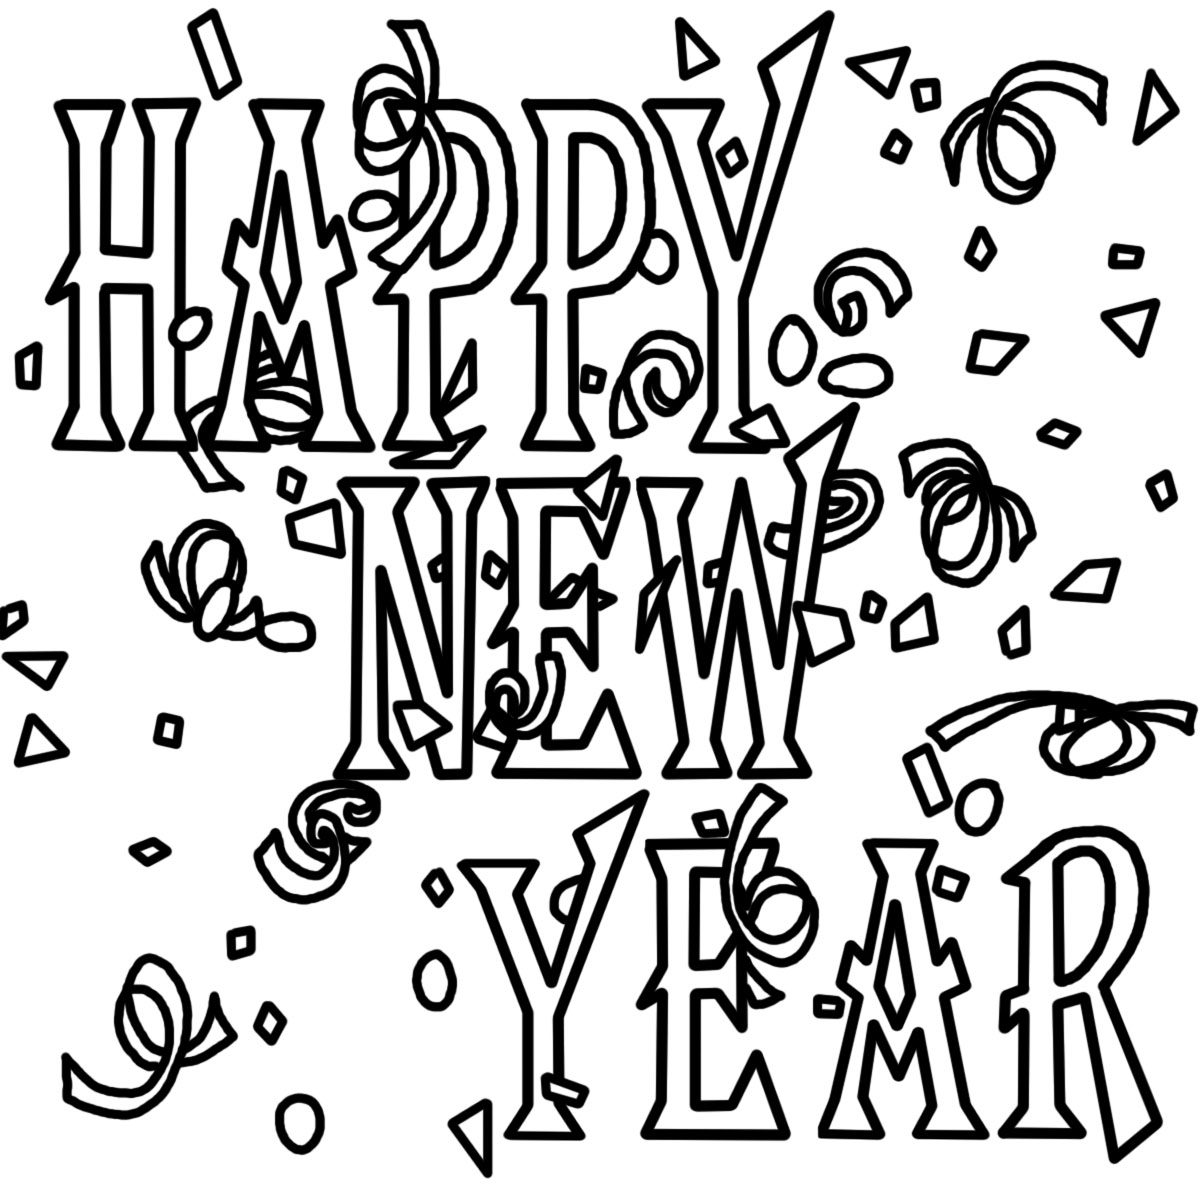 New years party images. Free black and white news eve clipart